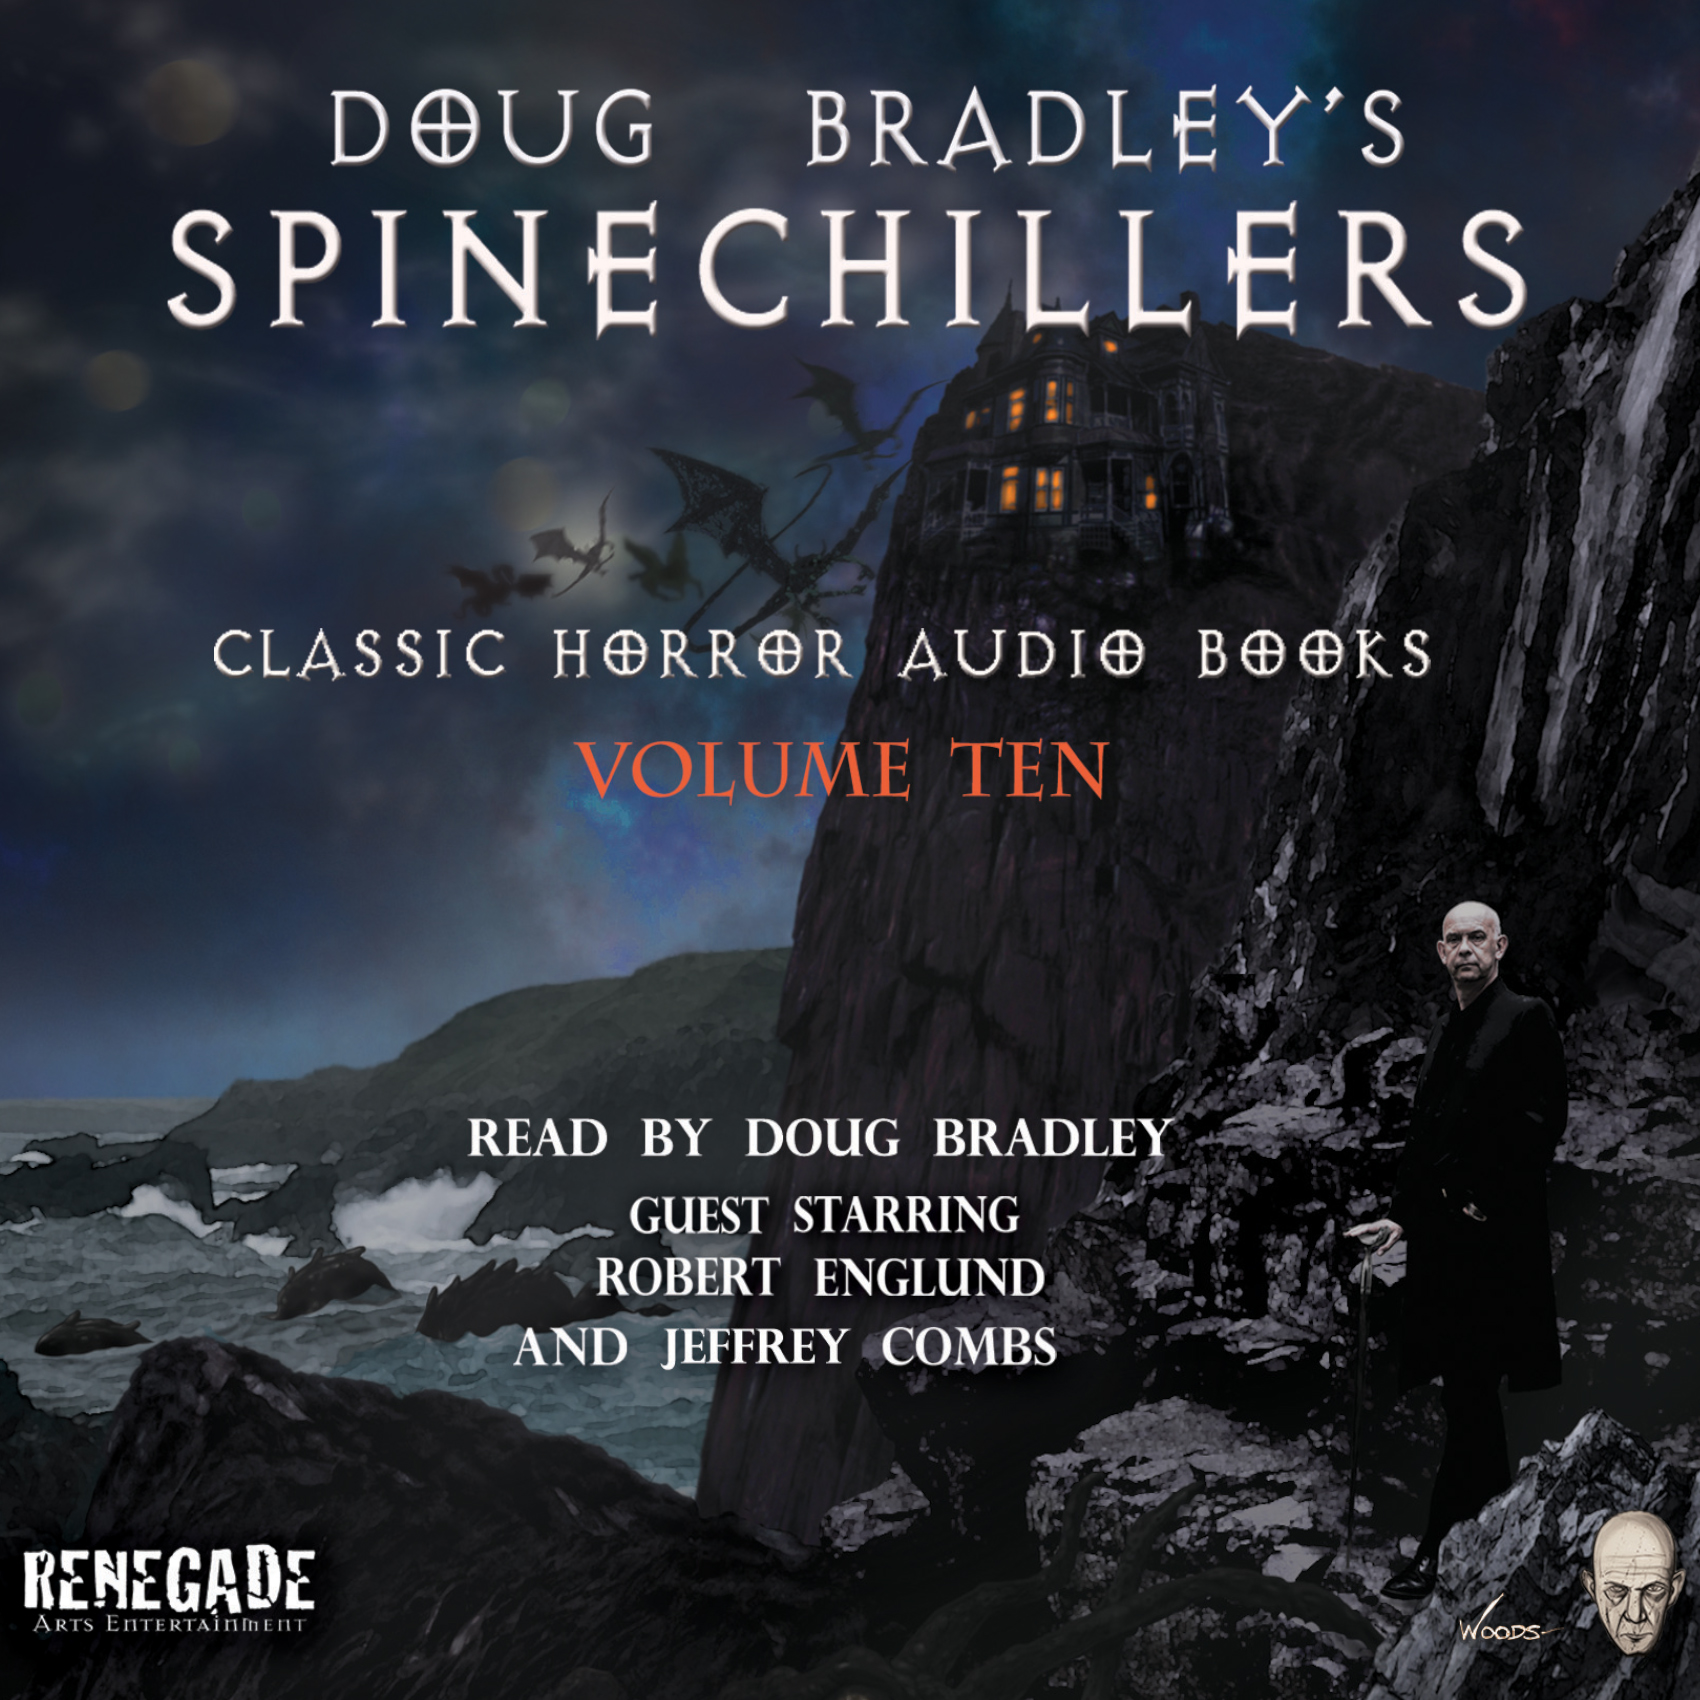 Doug Bradley's Spinechillers Volume Ten